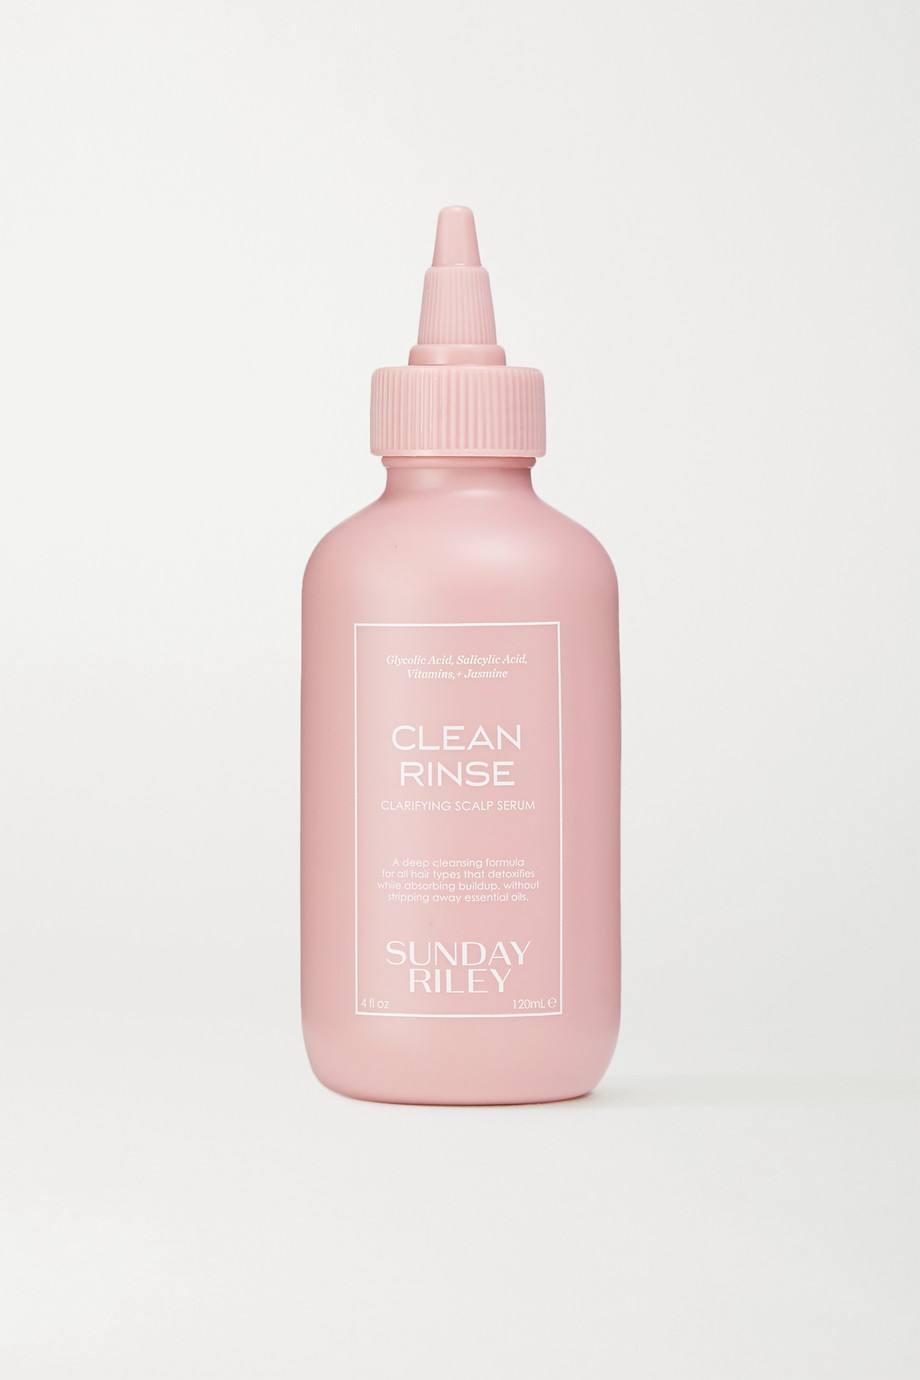 SUNDAY RILEY Clean Rinse Clarifying Scalp Serum, 120ml